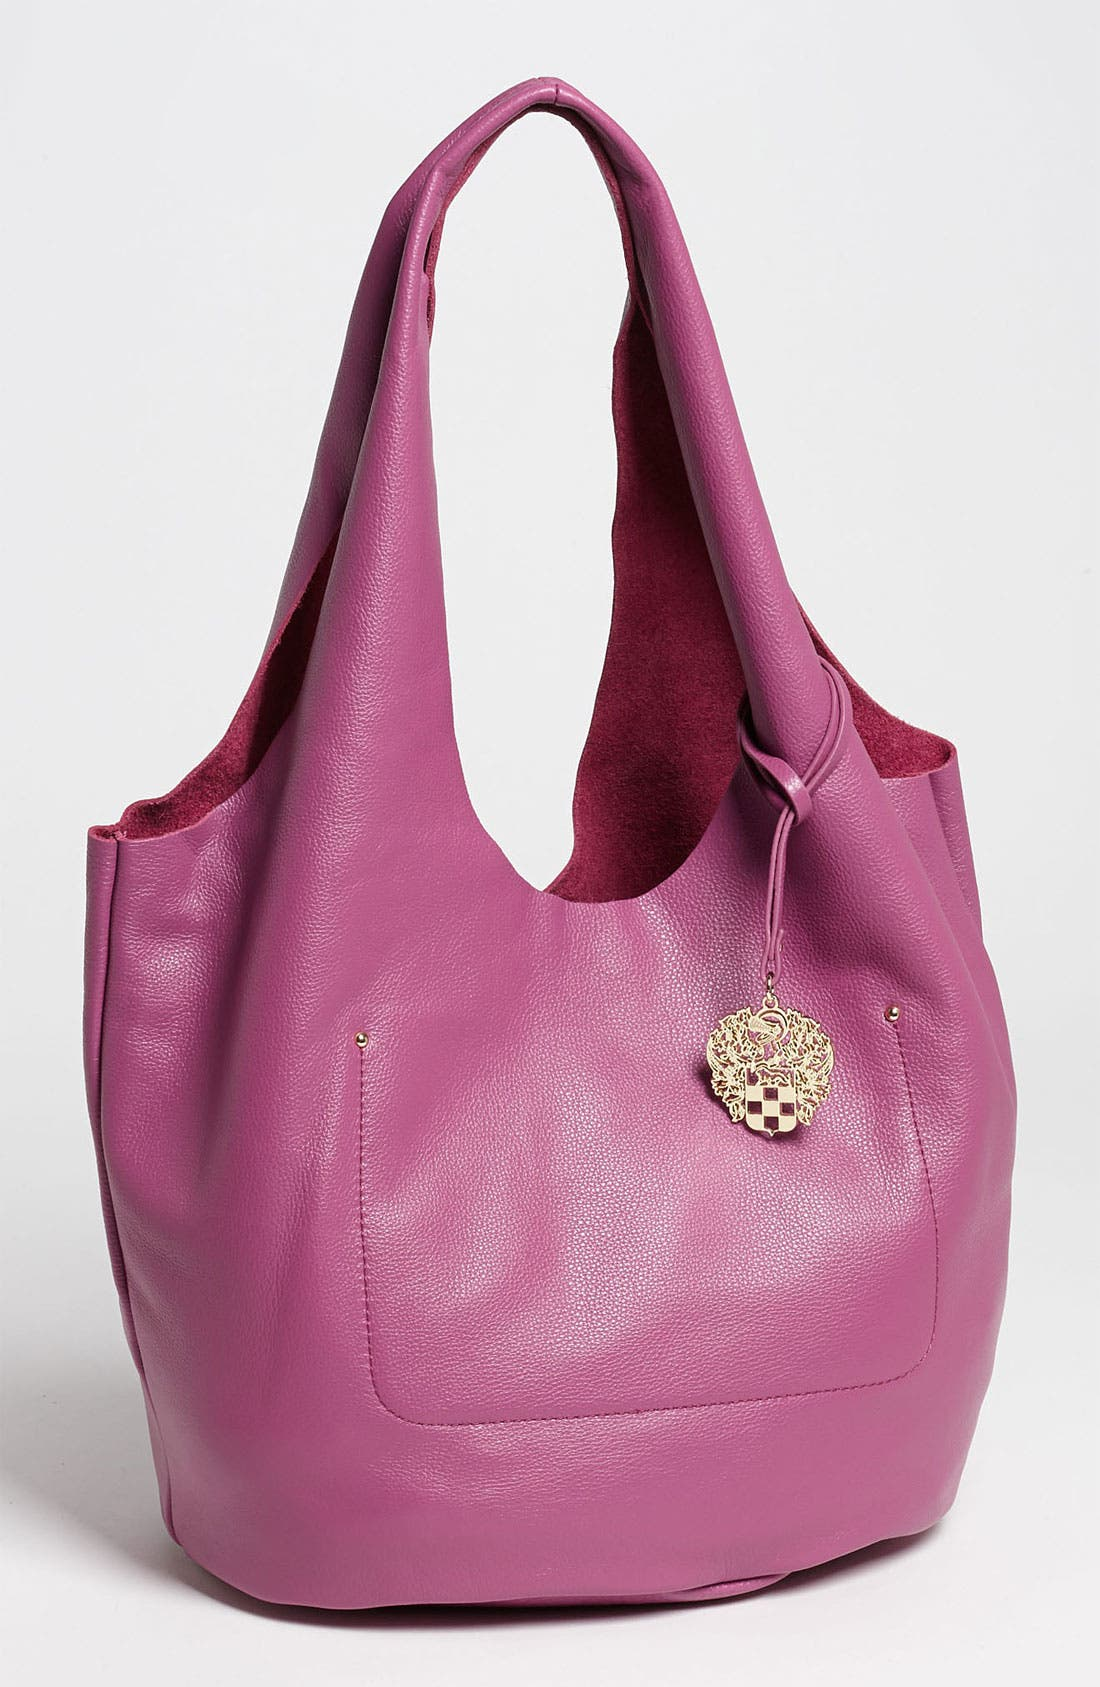 Alternate Image 1 Selected - Vince Camuto 'Wow' Tote